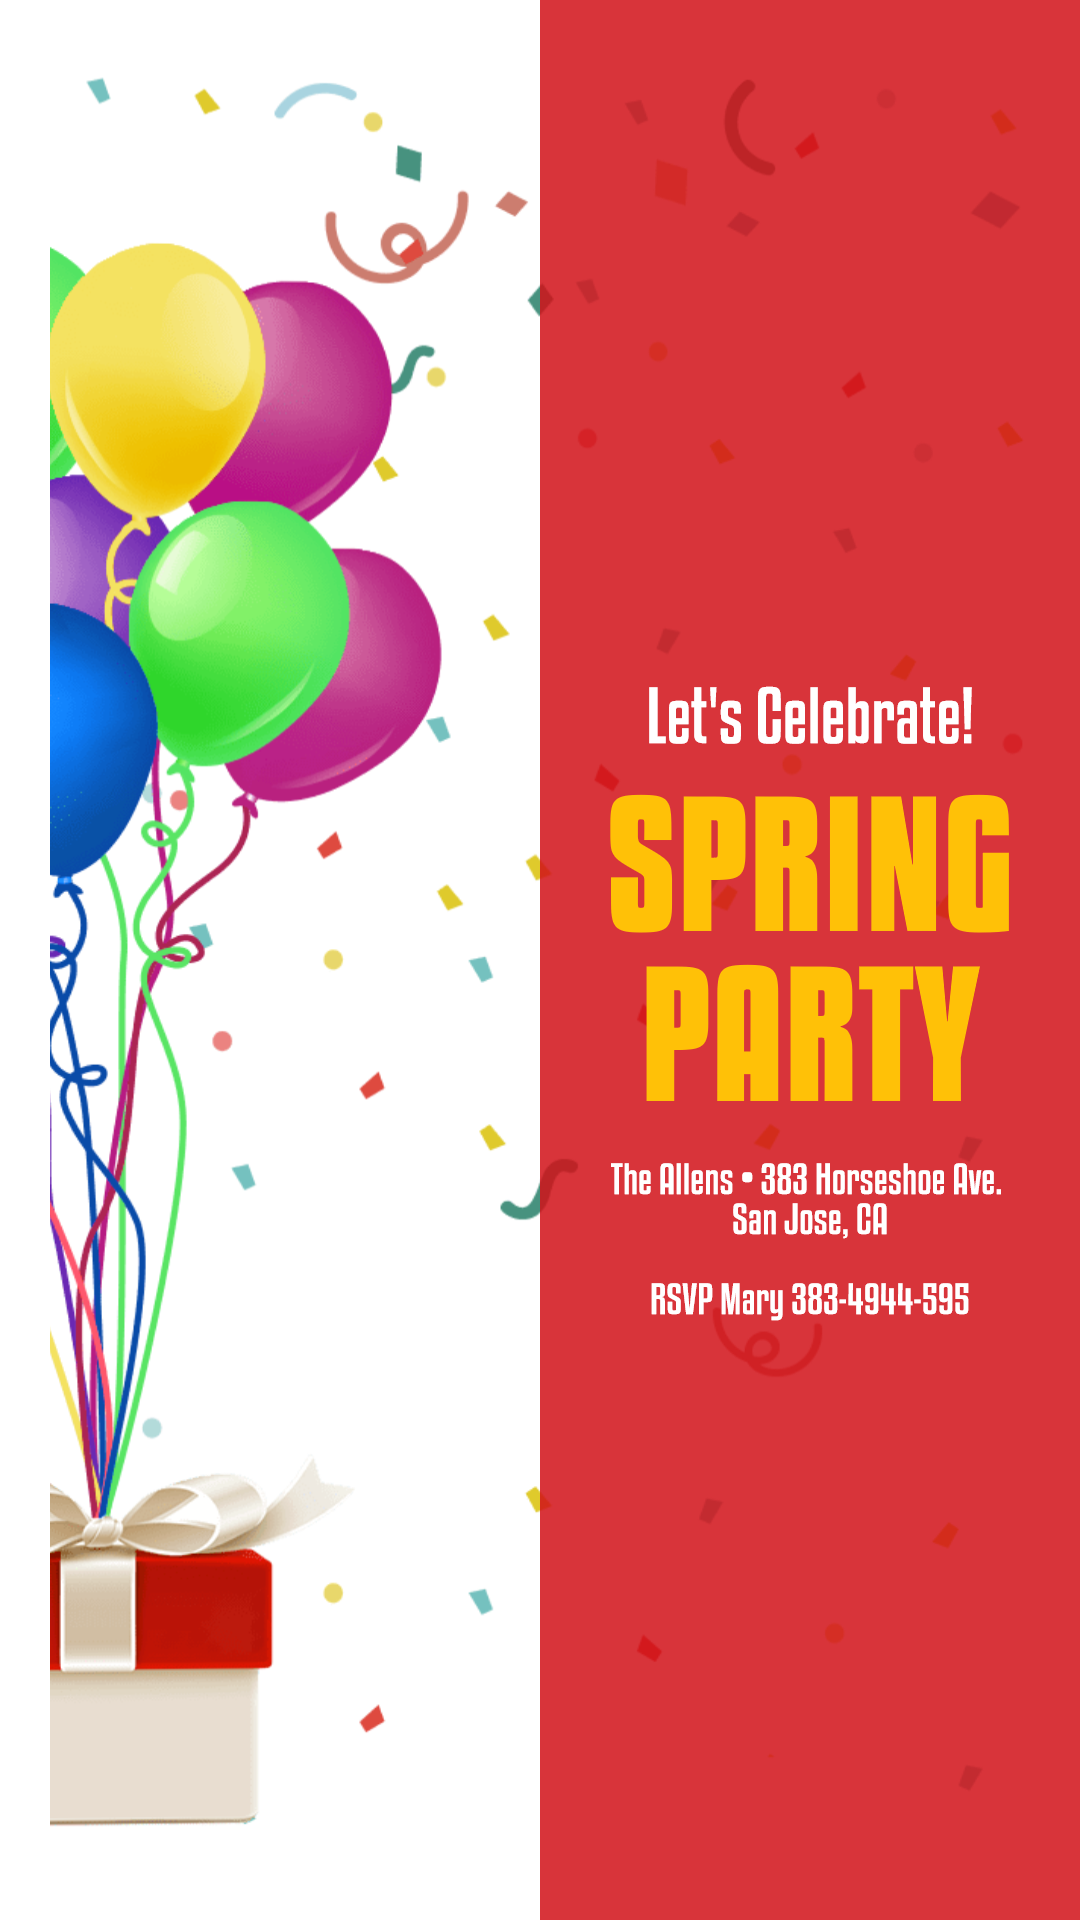 Spring Party Anniversay Invitation Animation  Template